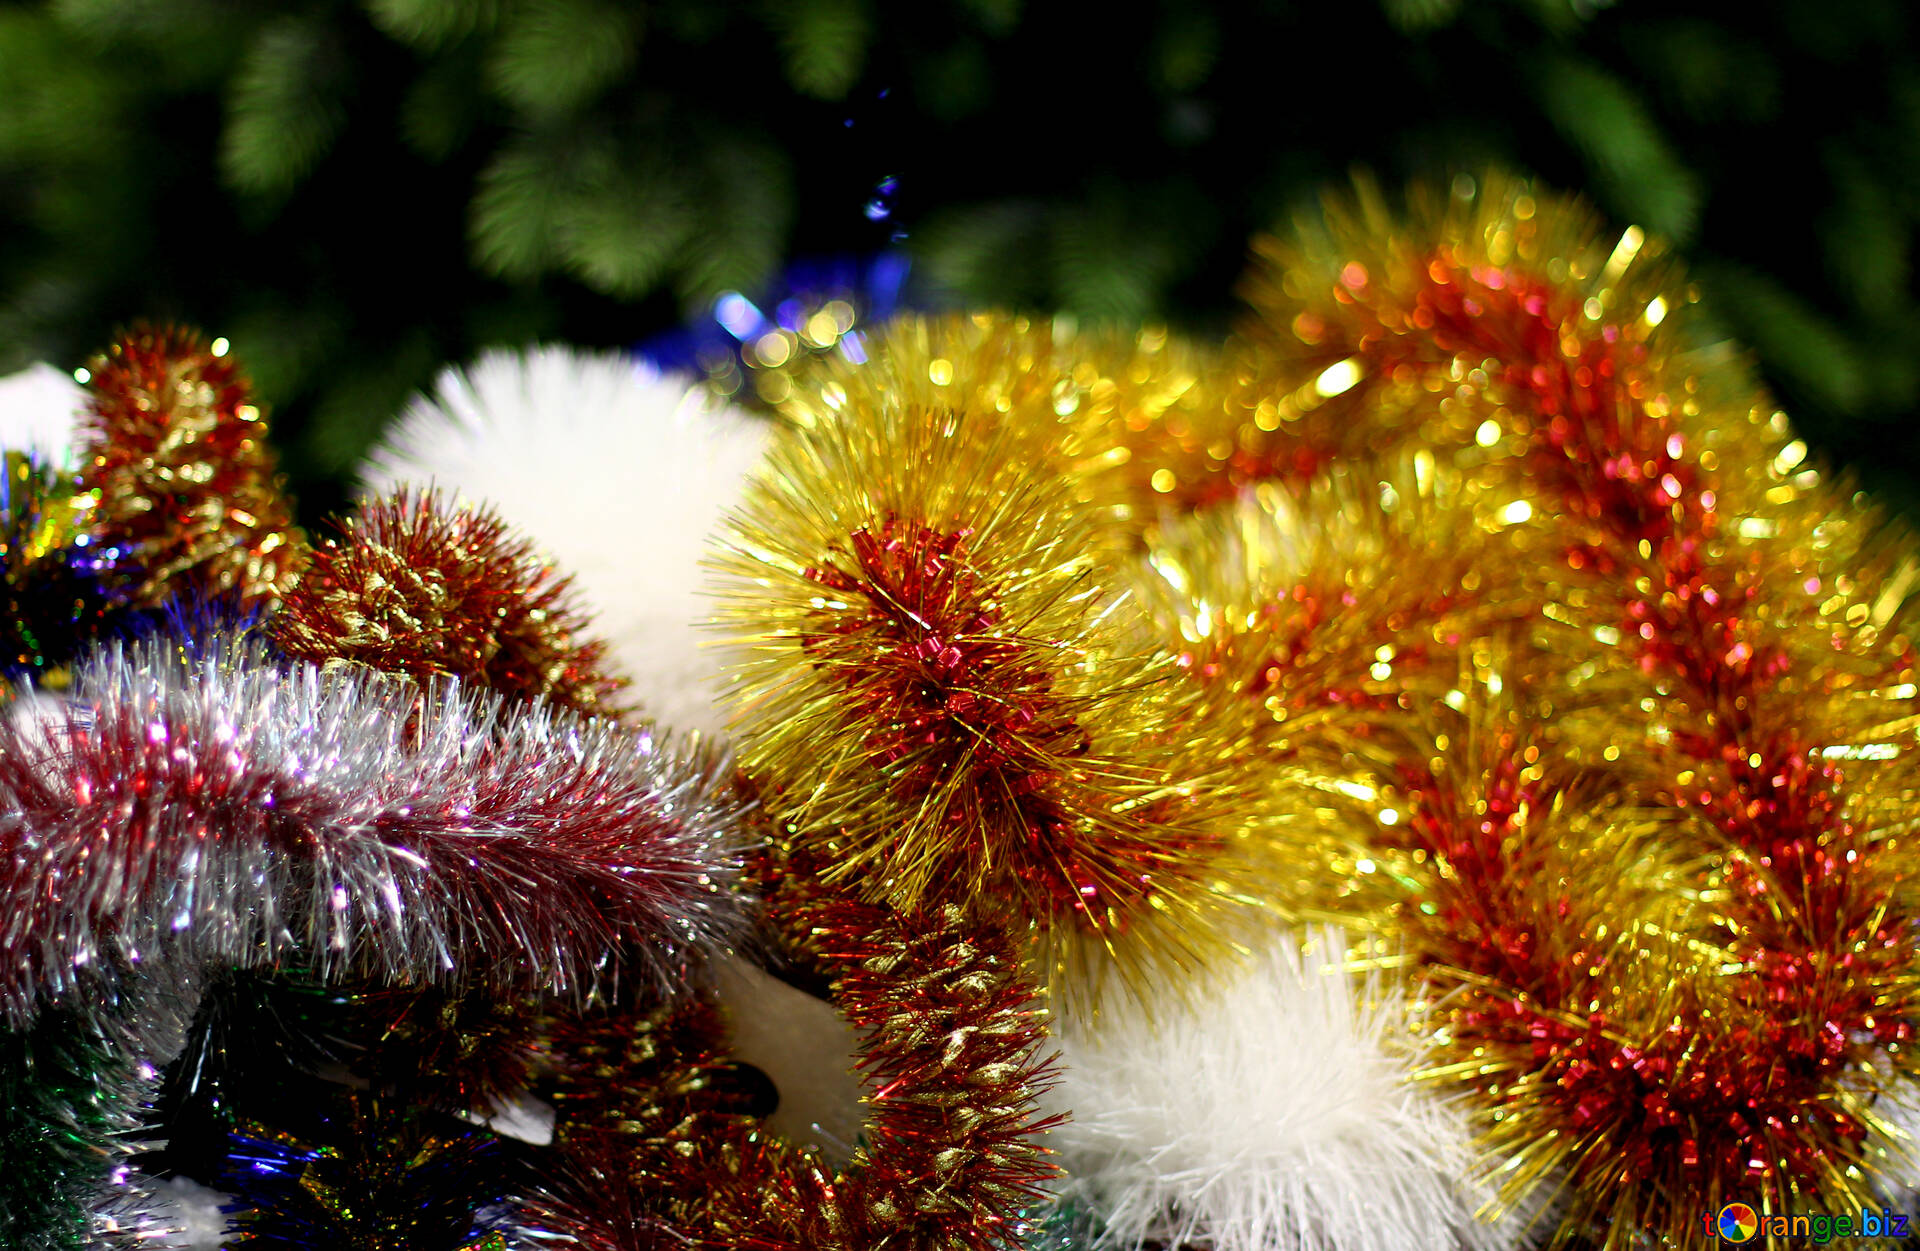 download free image colored background christmas garland in hd wallpaper size 1920px